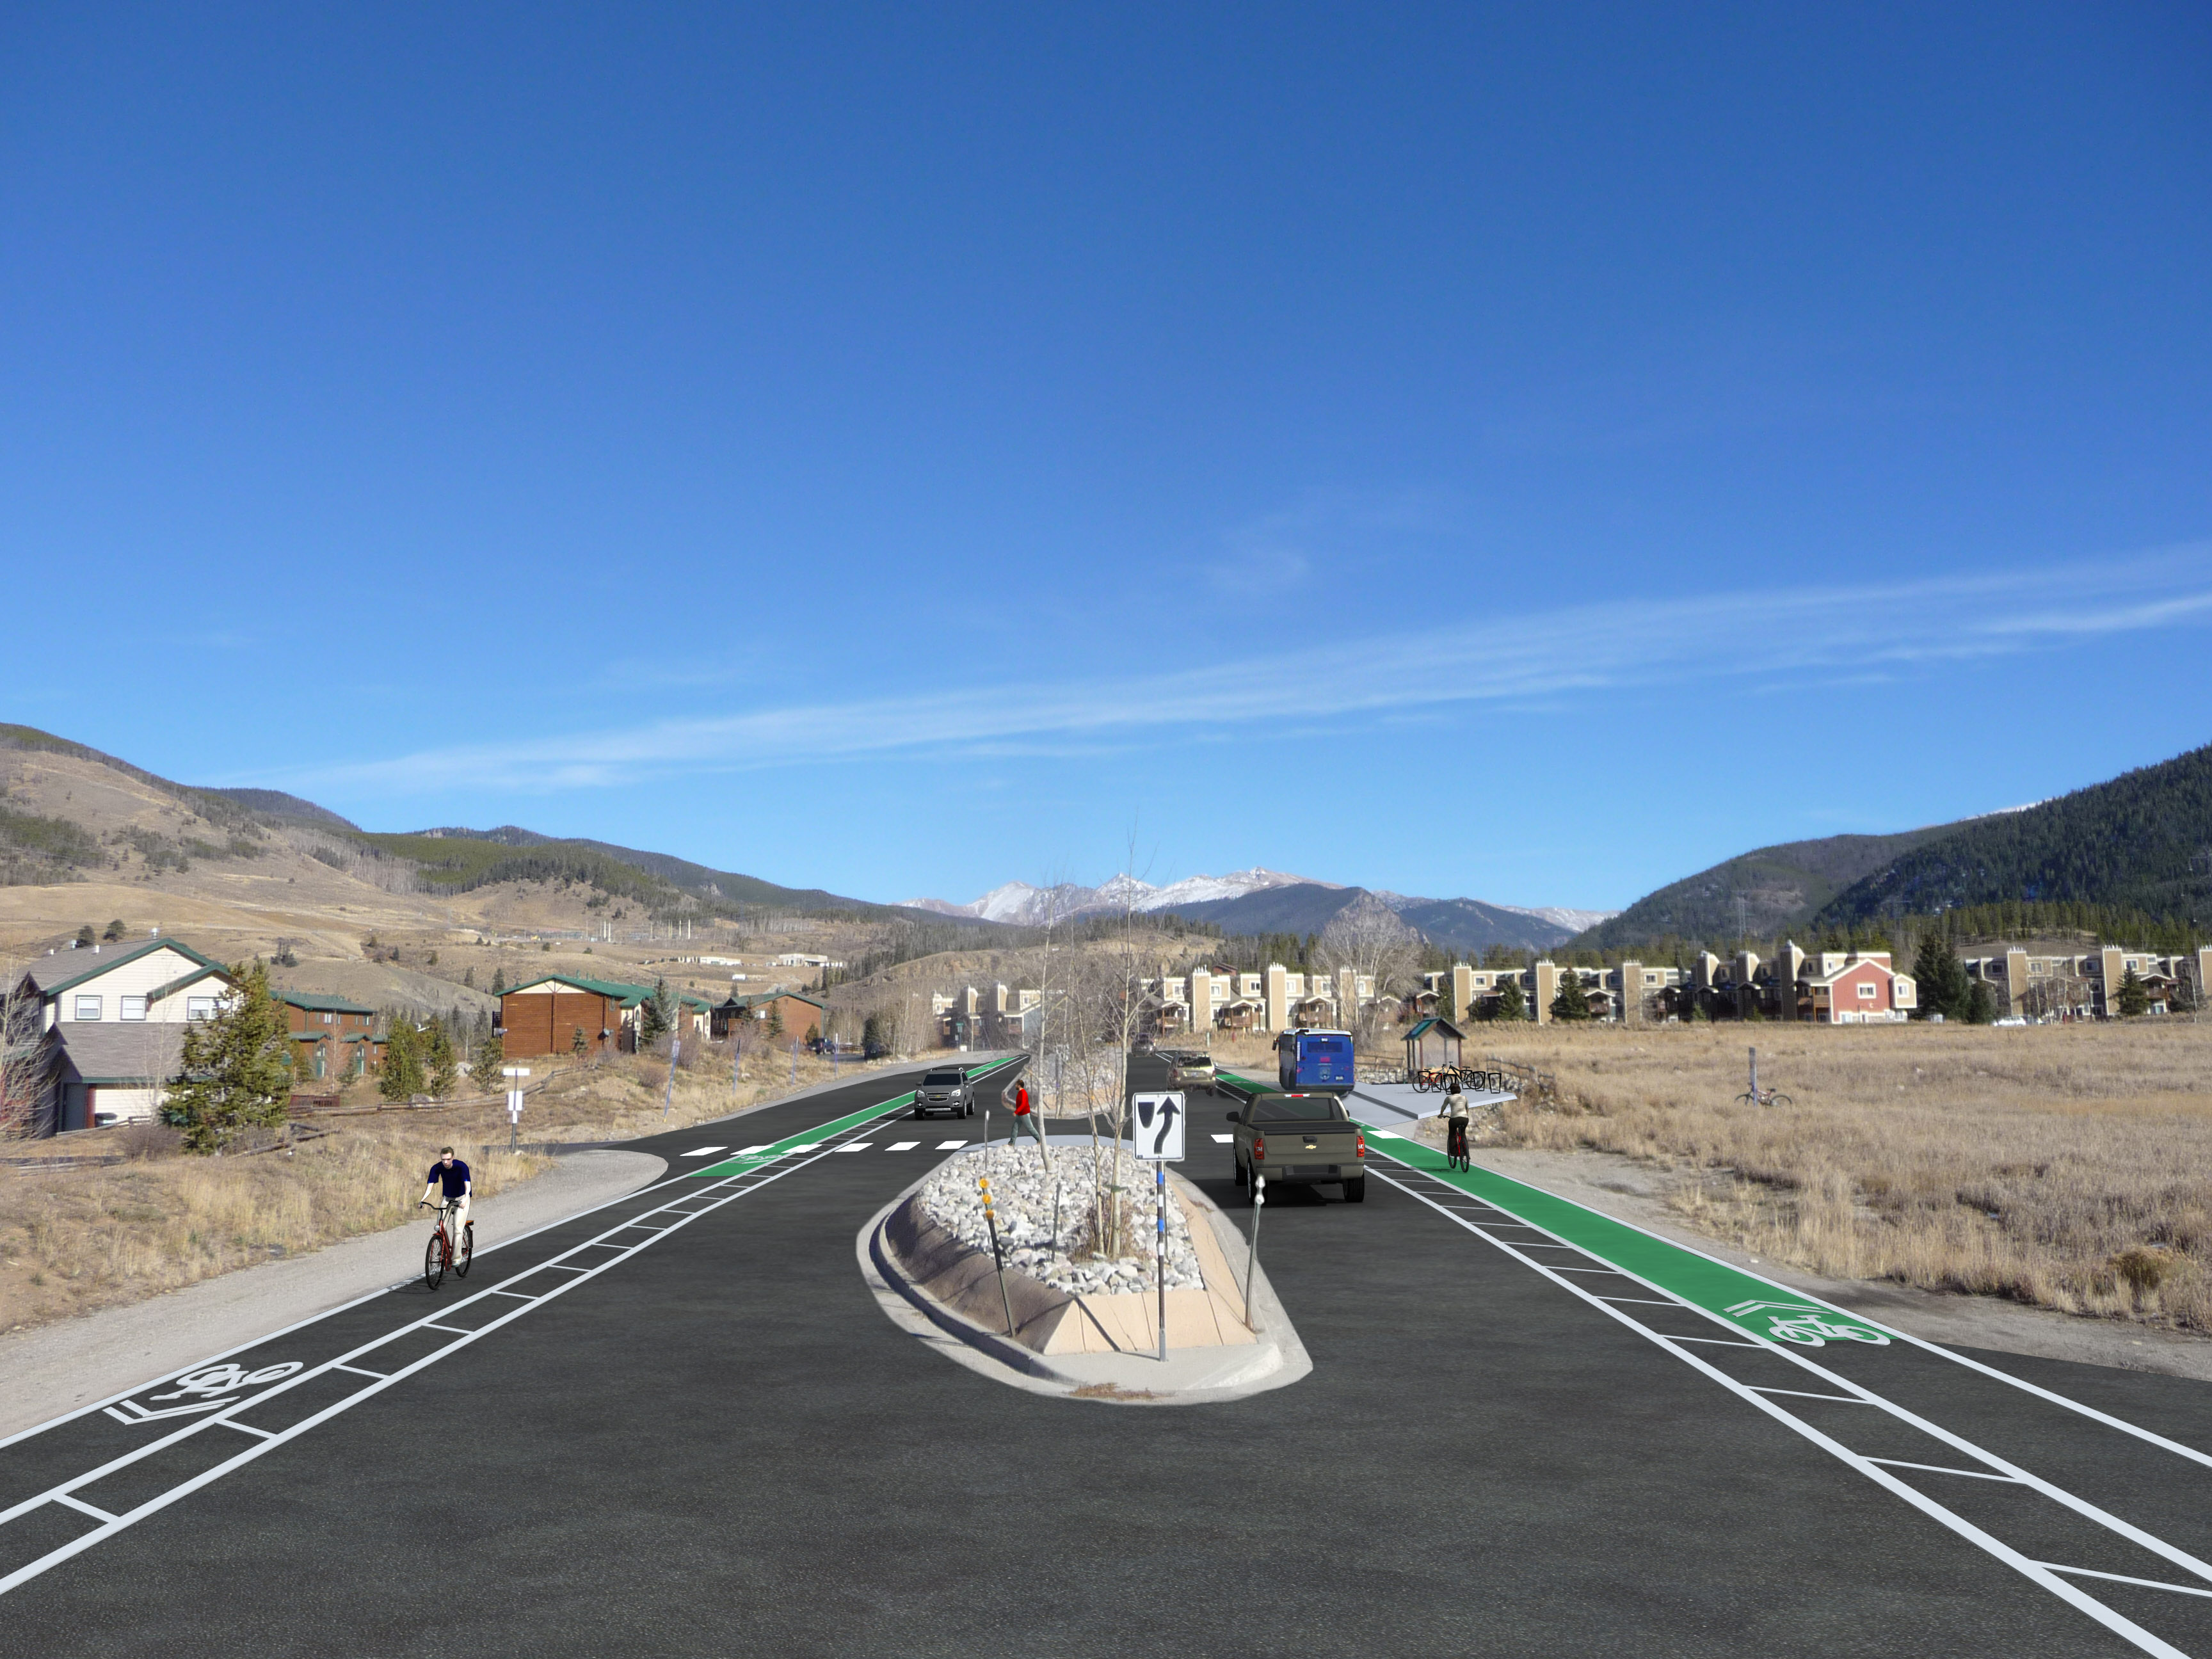 Photo of a road with green bike lanes on either side.